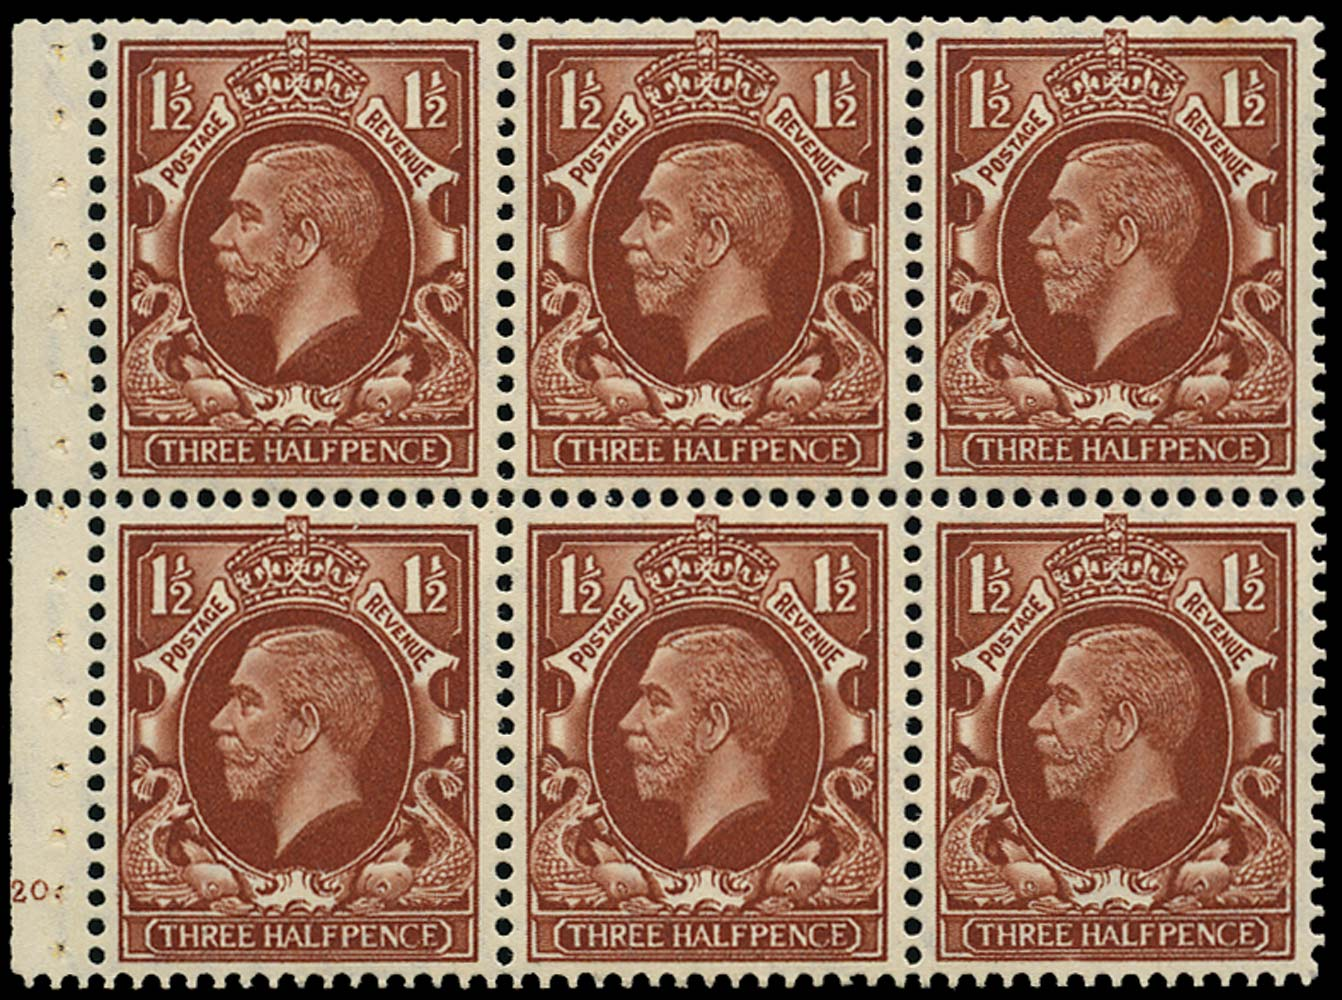 GB 1935  SG441f Booklet pane (small format) Cyl.G20.